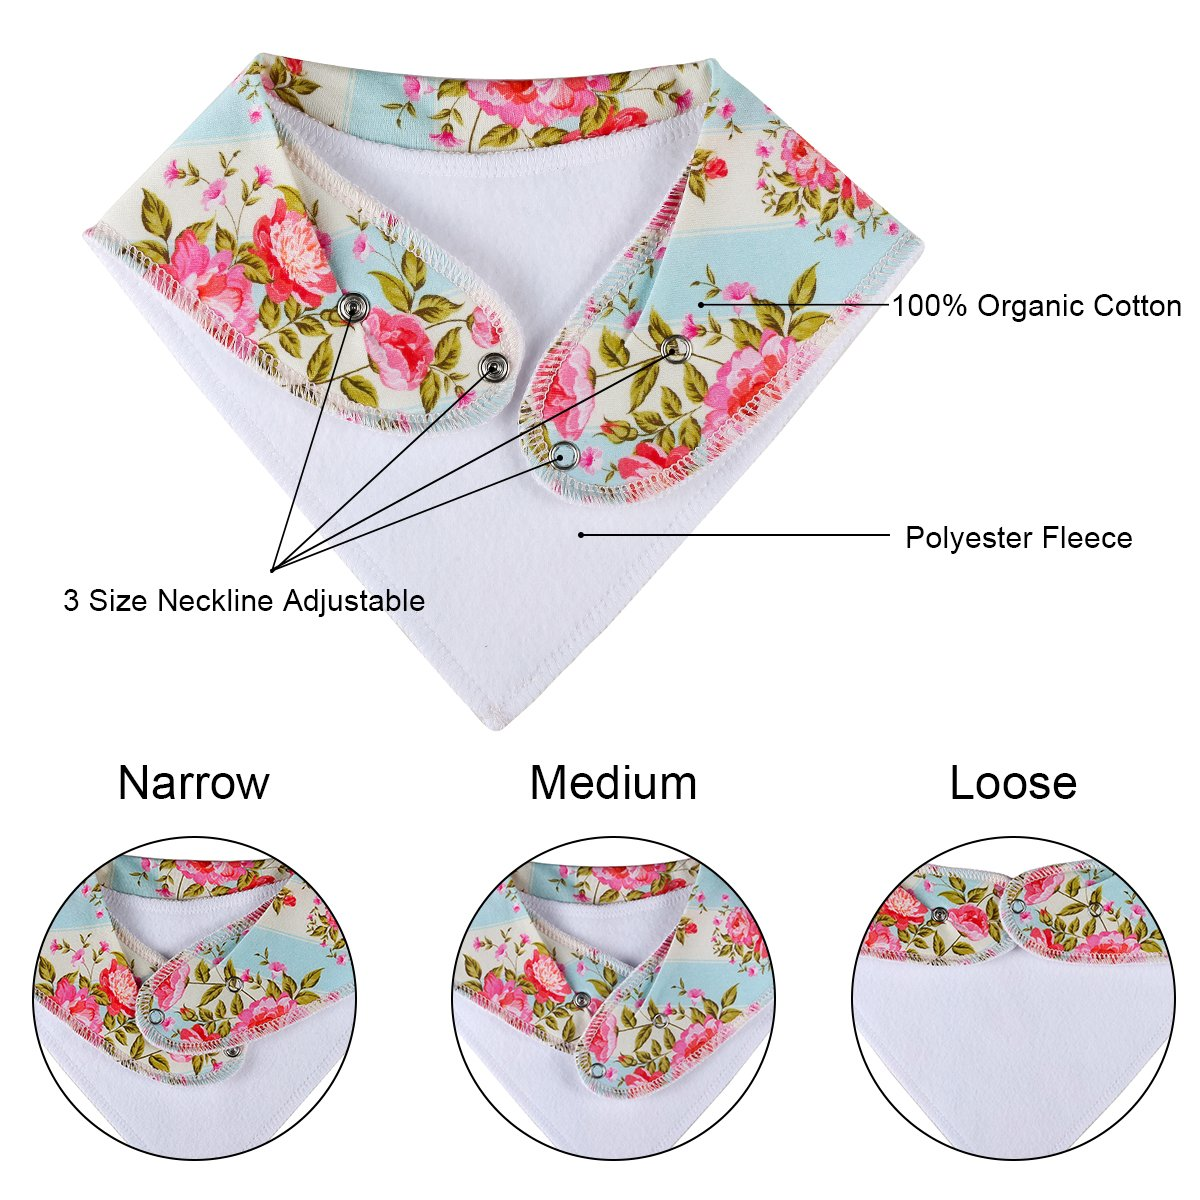 """10-Pack Baby Bandana Bibs Upsimples Baby Girl Bibs for Drooling and Teething, 100% Organic Cotton and Super Absorbent Hypoallergenic Bibs Baby Shower Gift - """"Blossom Set"""" by upsimples (Image #8)"""